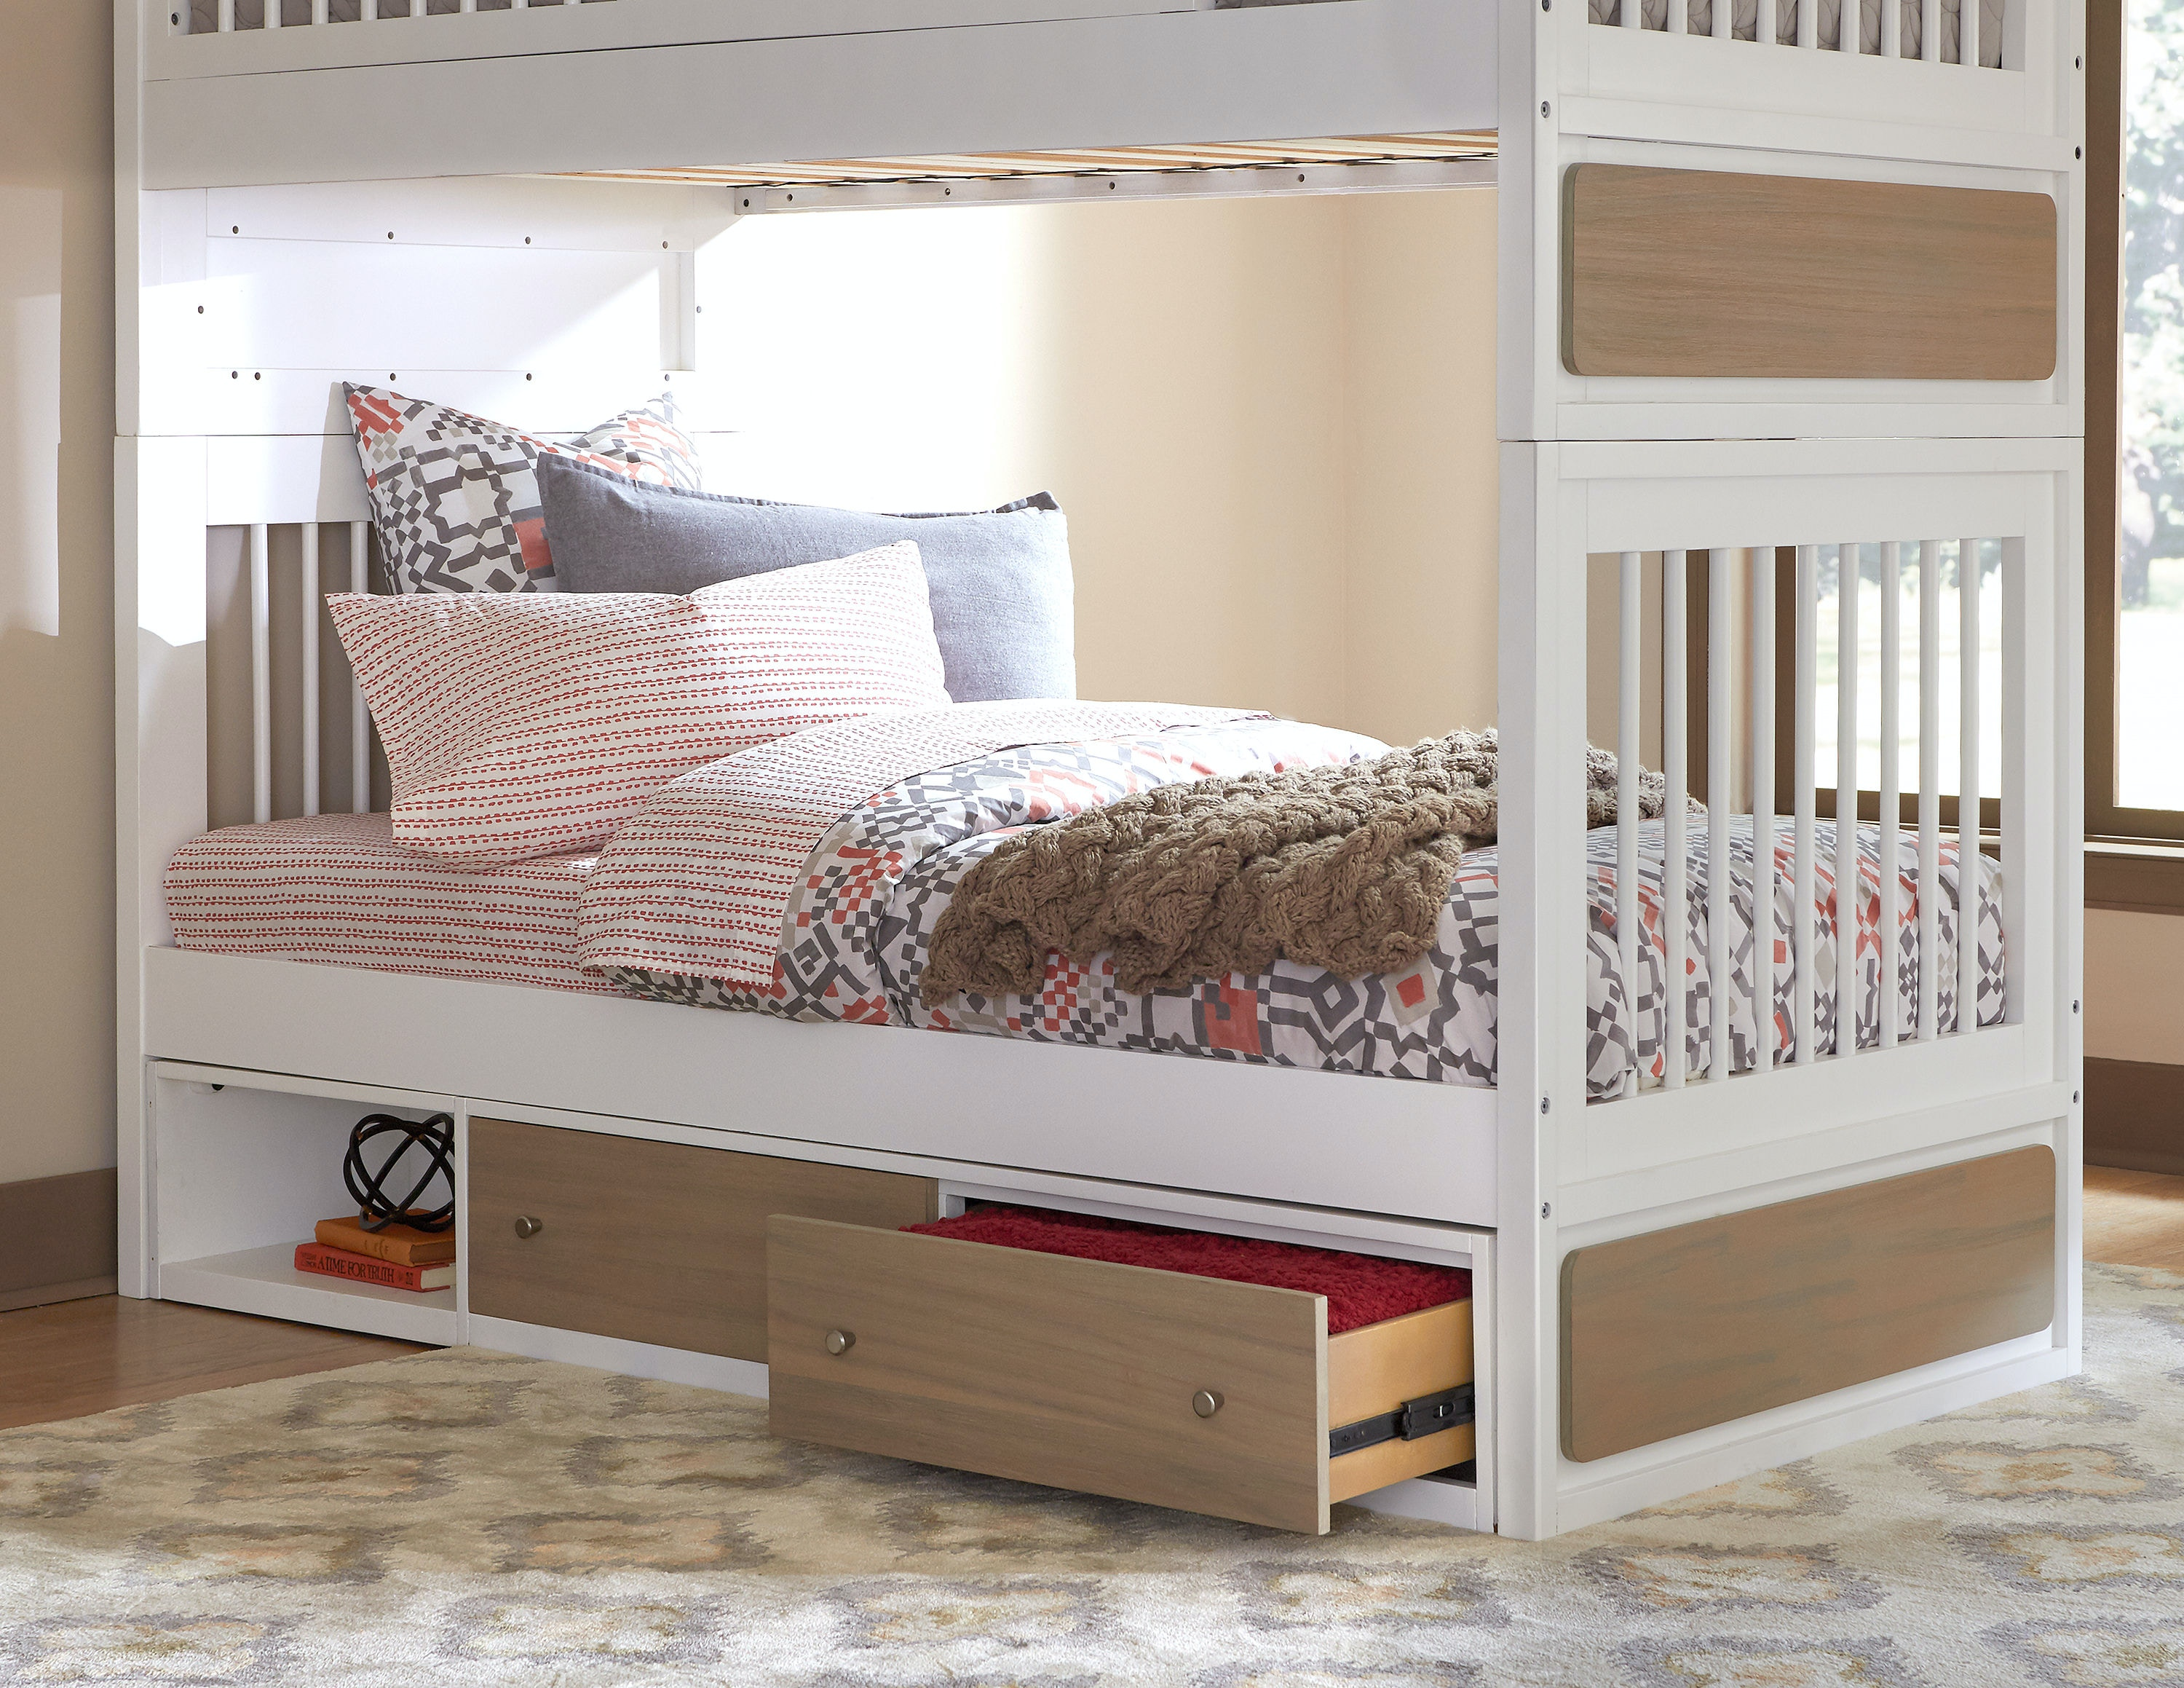 Hillsdale Kids And Teen Youth East End Spindle Twin Bed W Storage 7100 331ns North Carolina